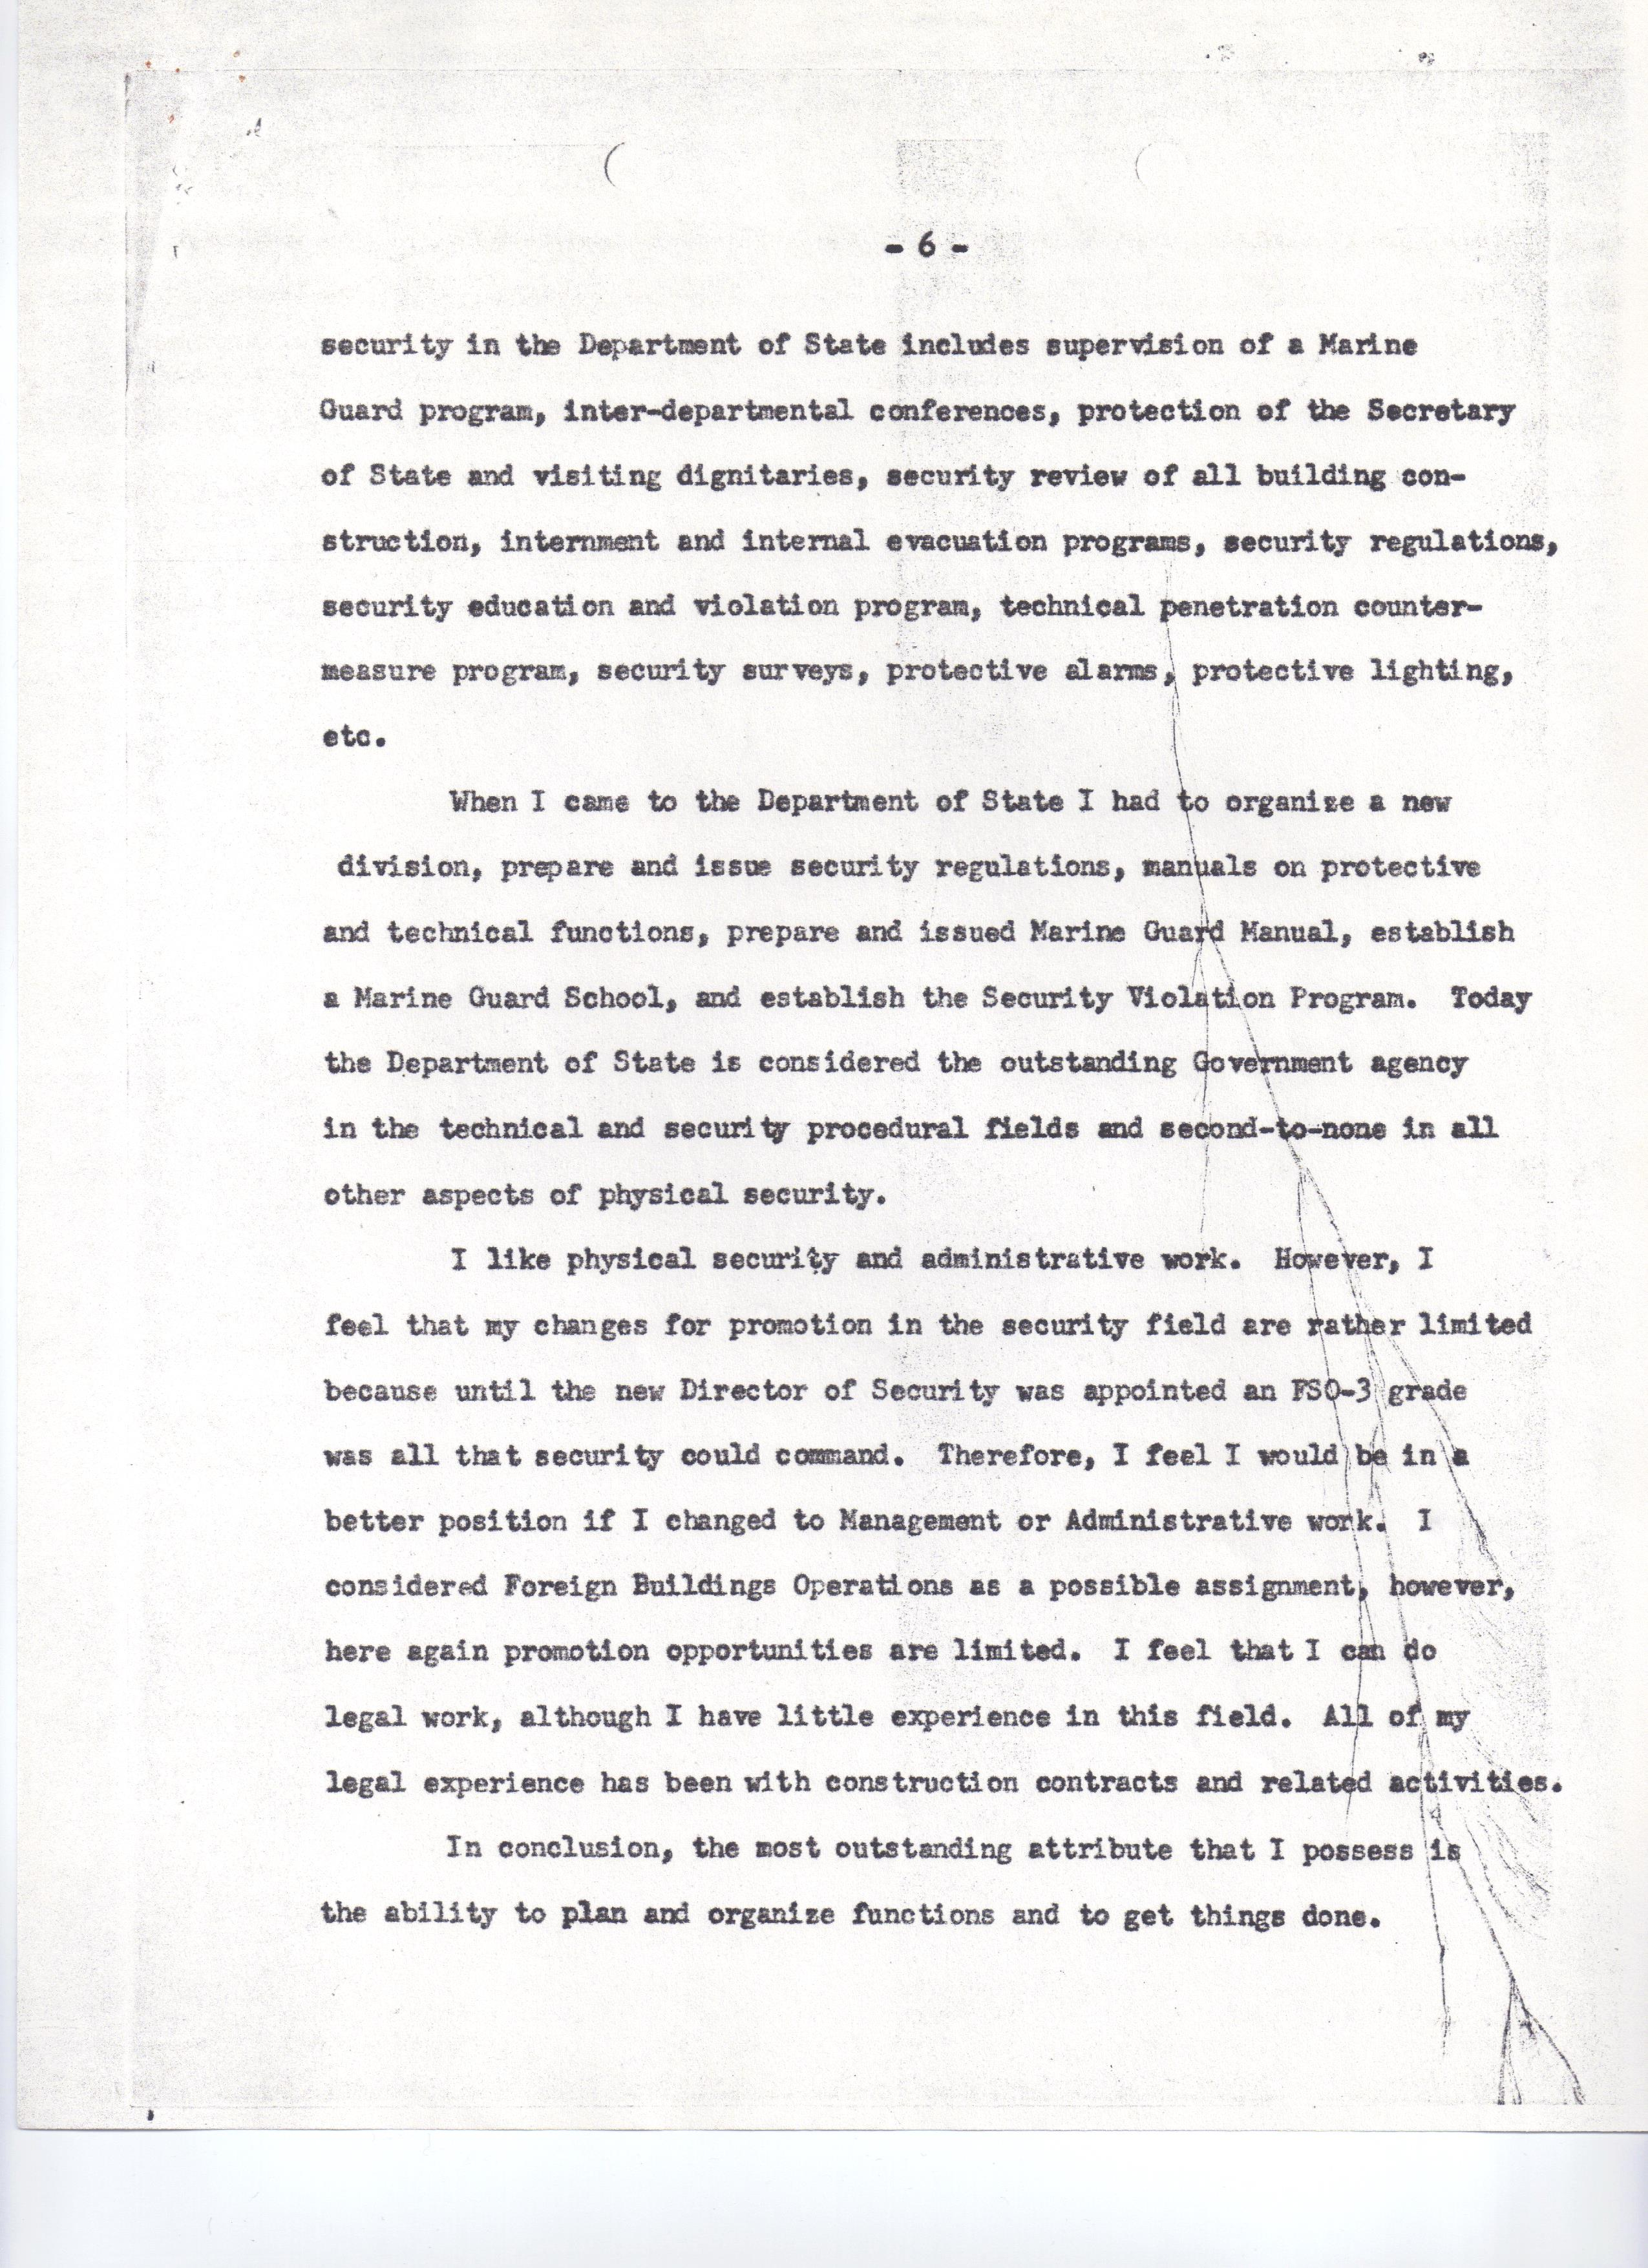 file bud uanna foreign service essay jpg file bud uanna foreign service essay 19 1956 7 jpg